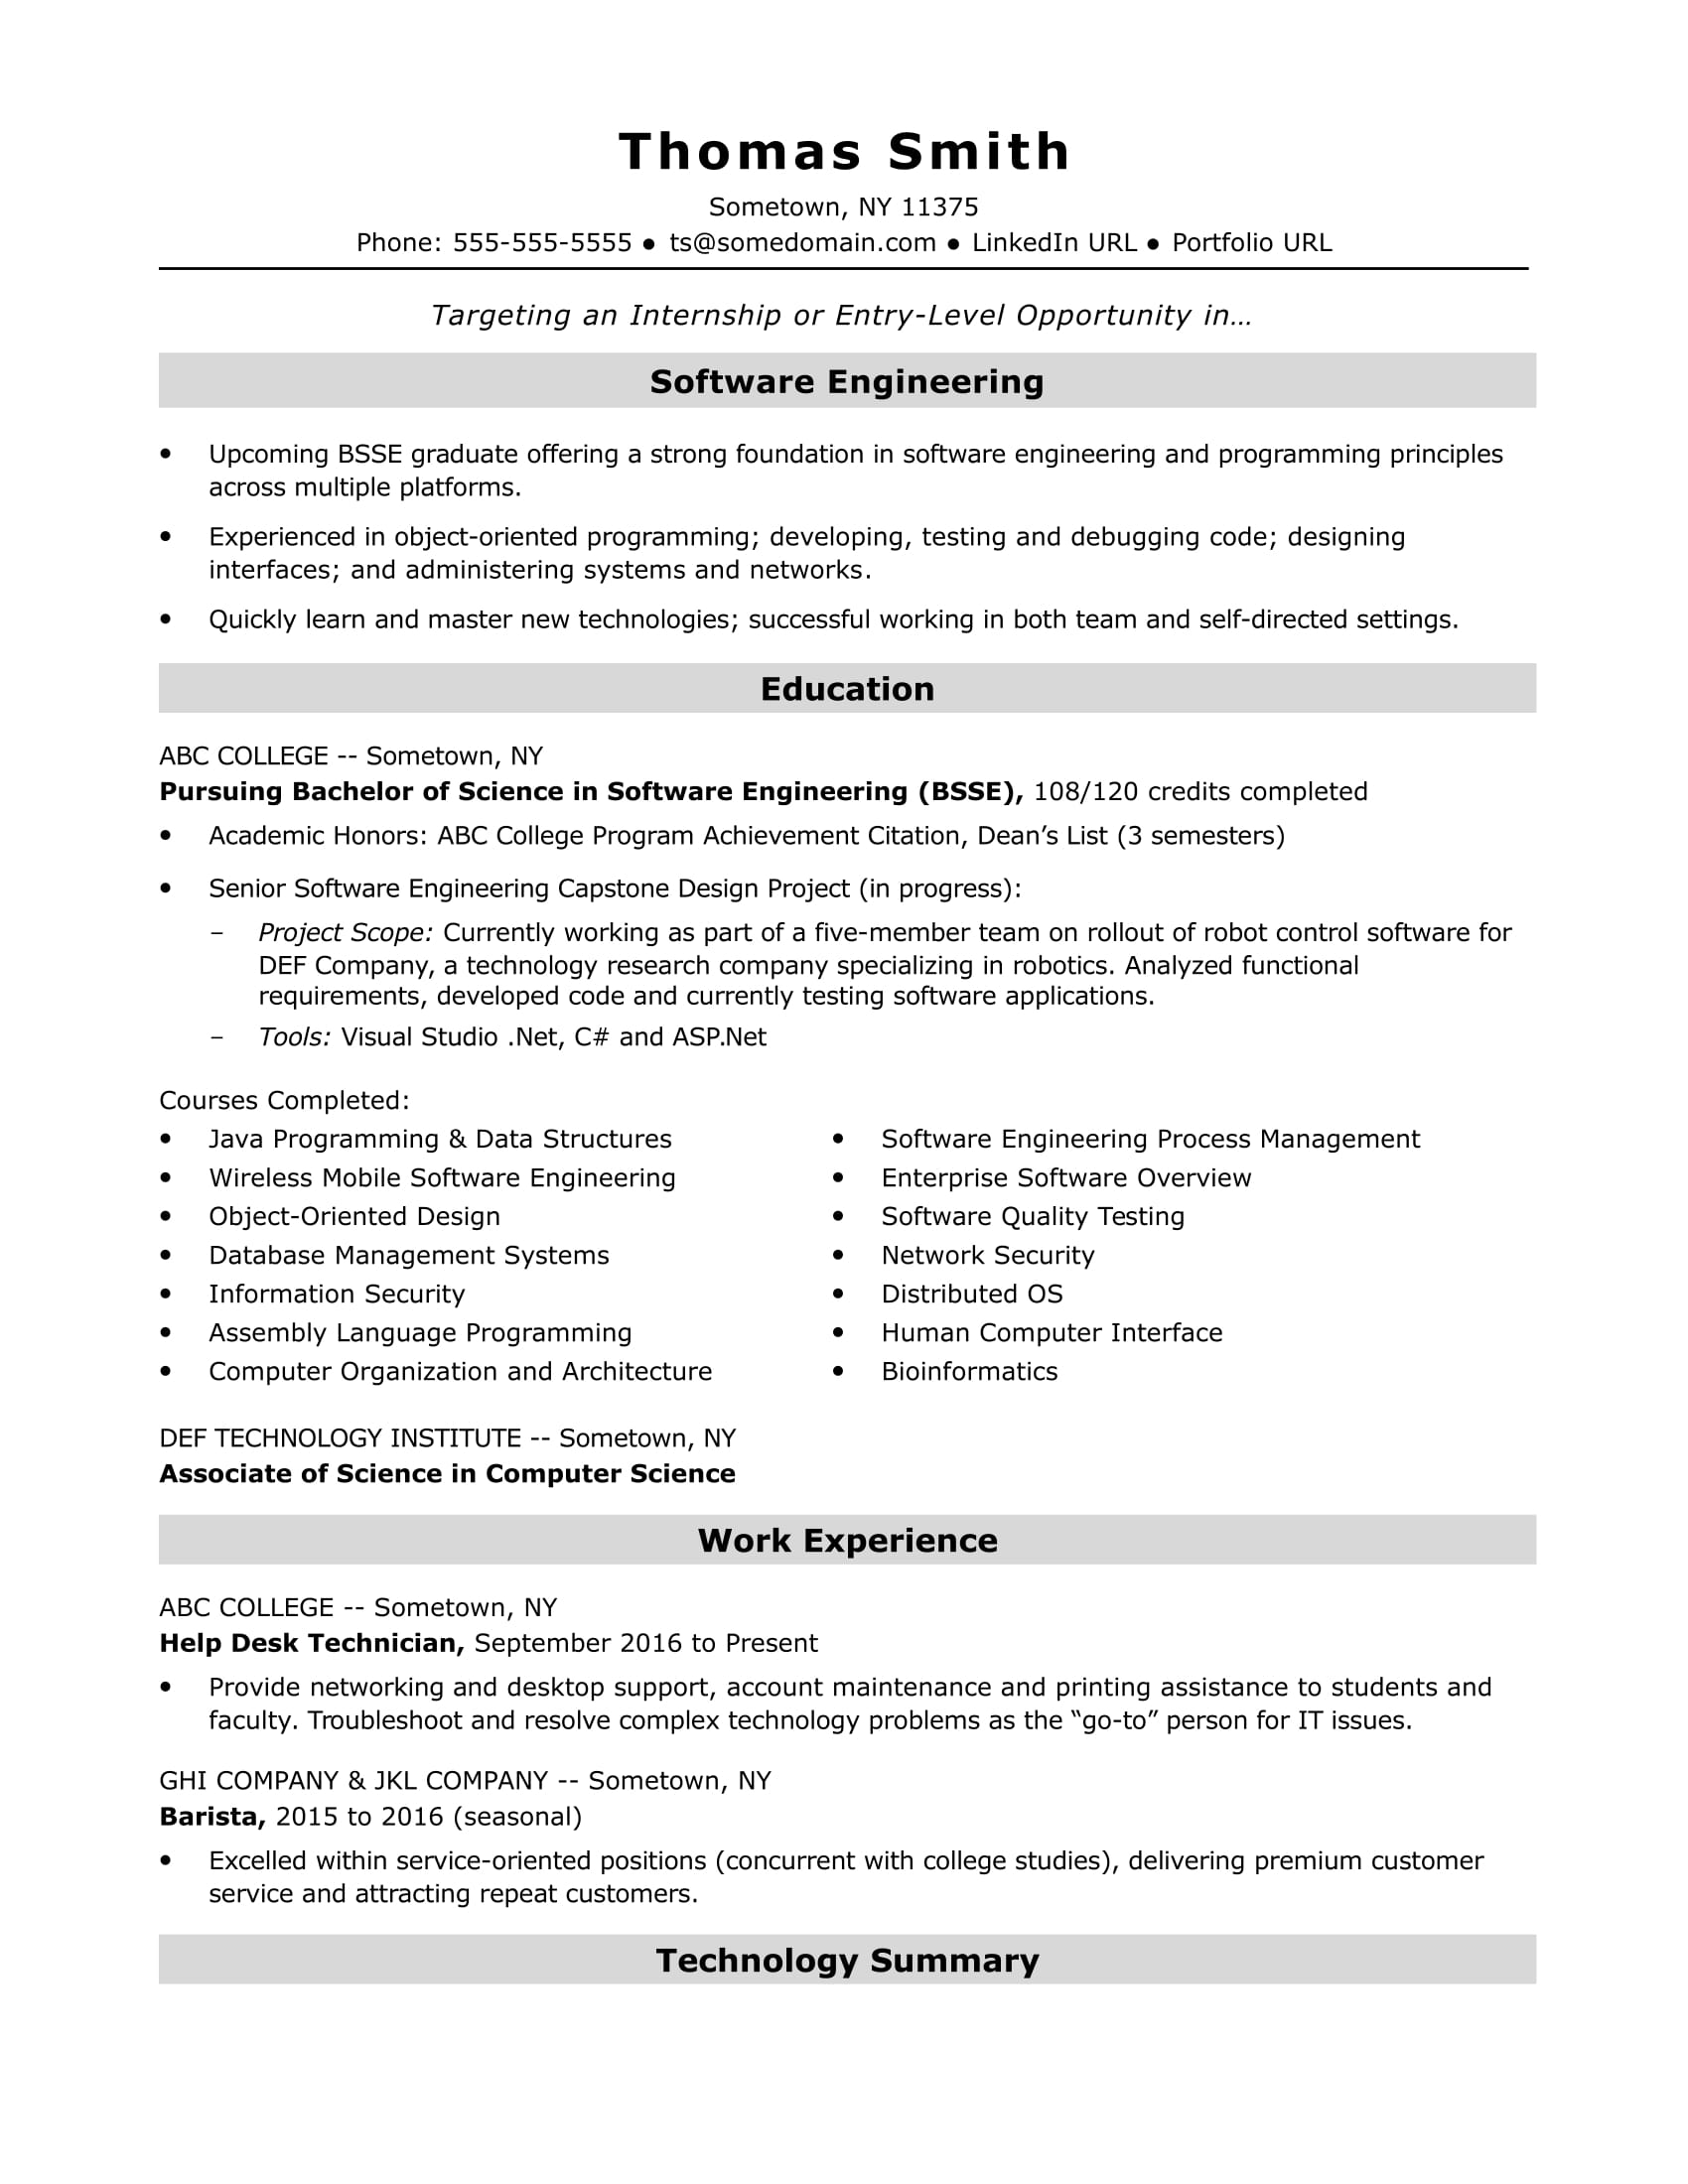 Sample Resume For An Entry Level Software Engineer  Sample Engineer Resume